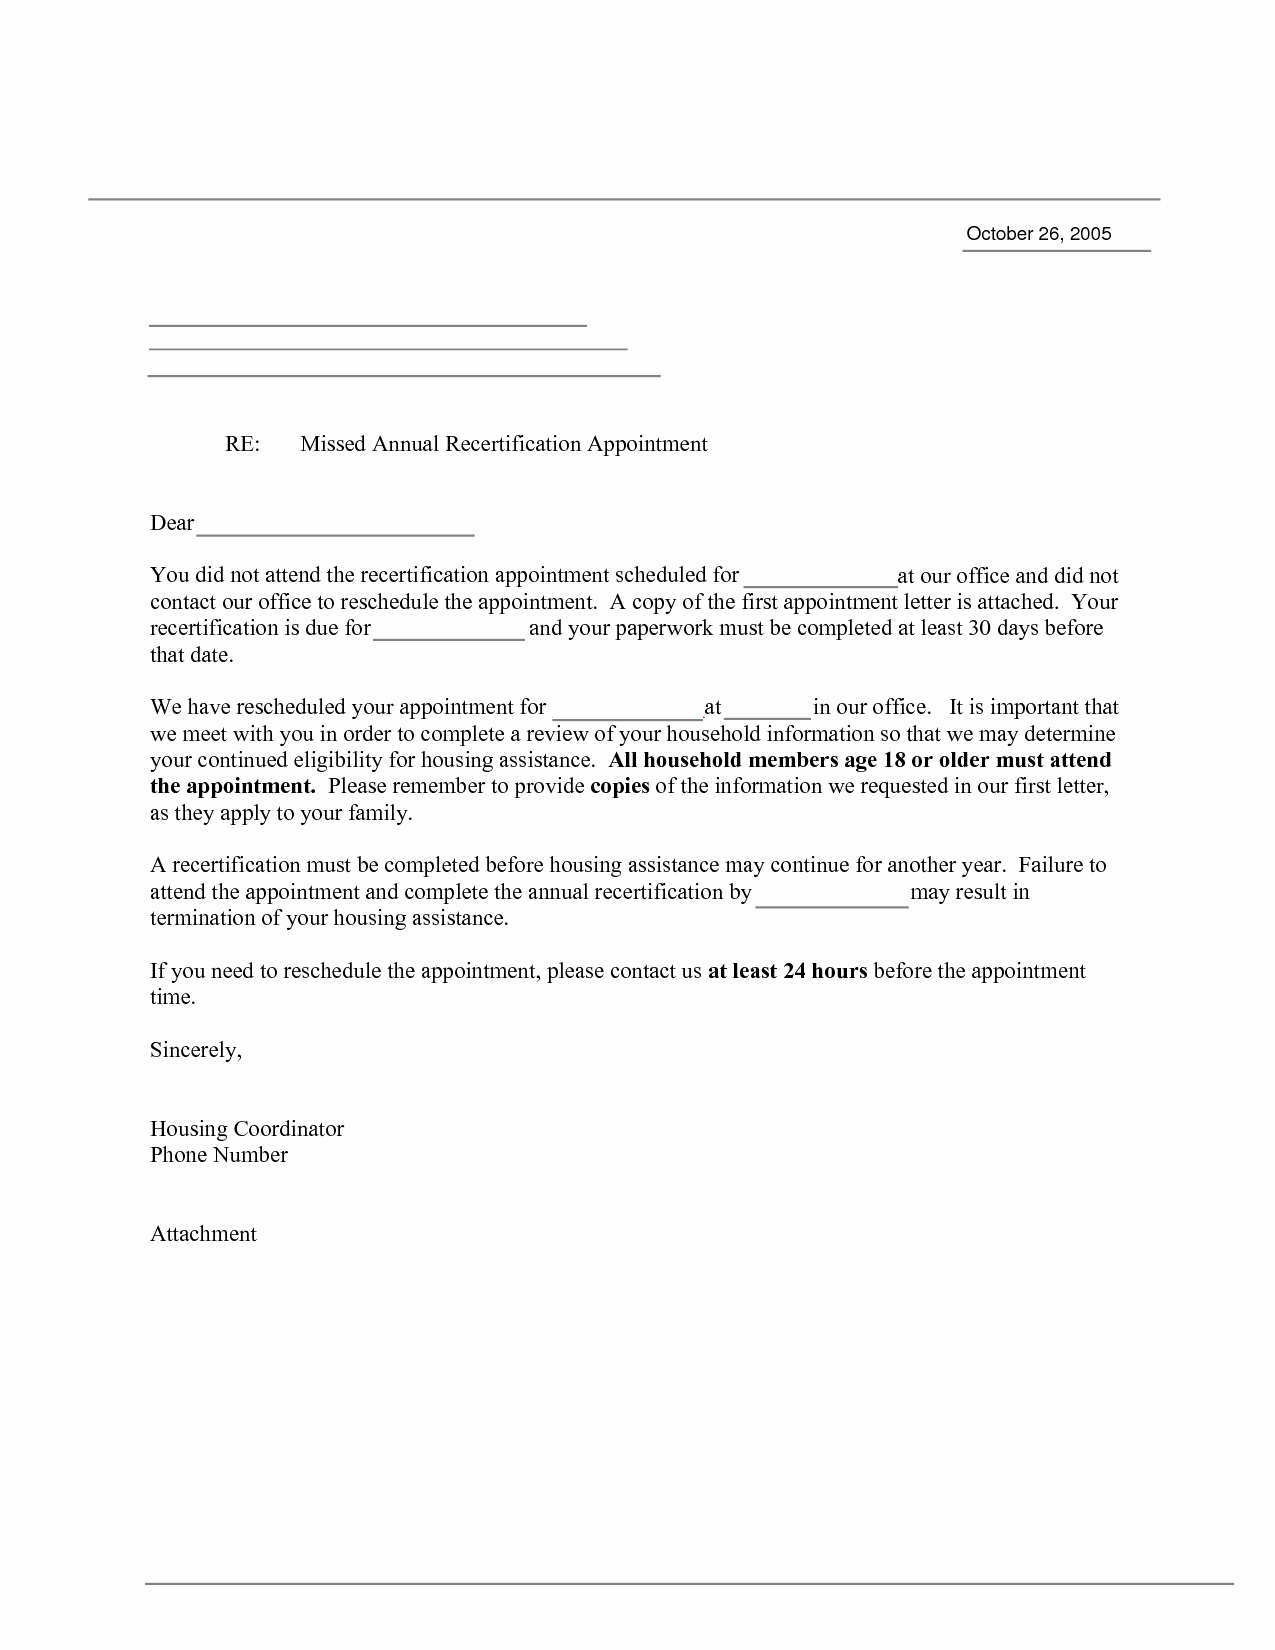 Patient Missed Appointment Letter Template Unique 10 Best Of Doctor Appointment Letter Sample